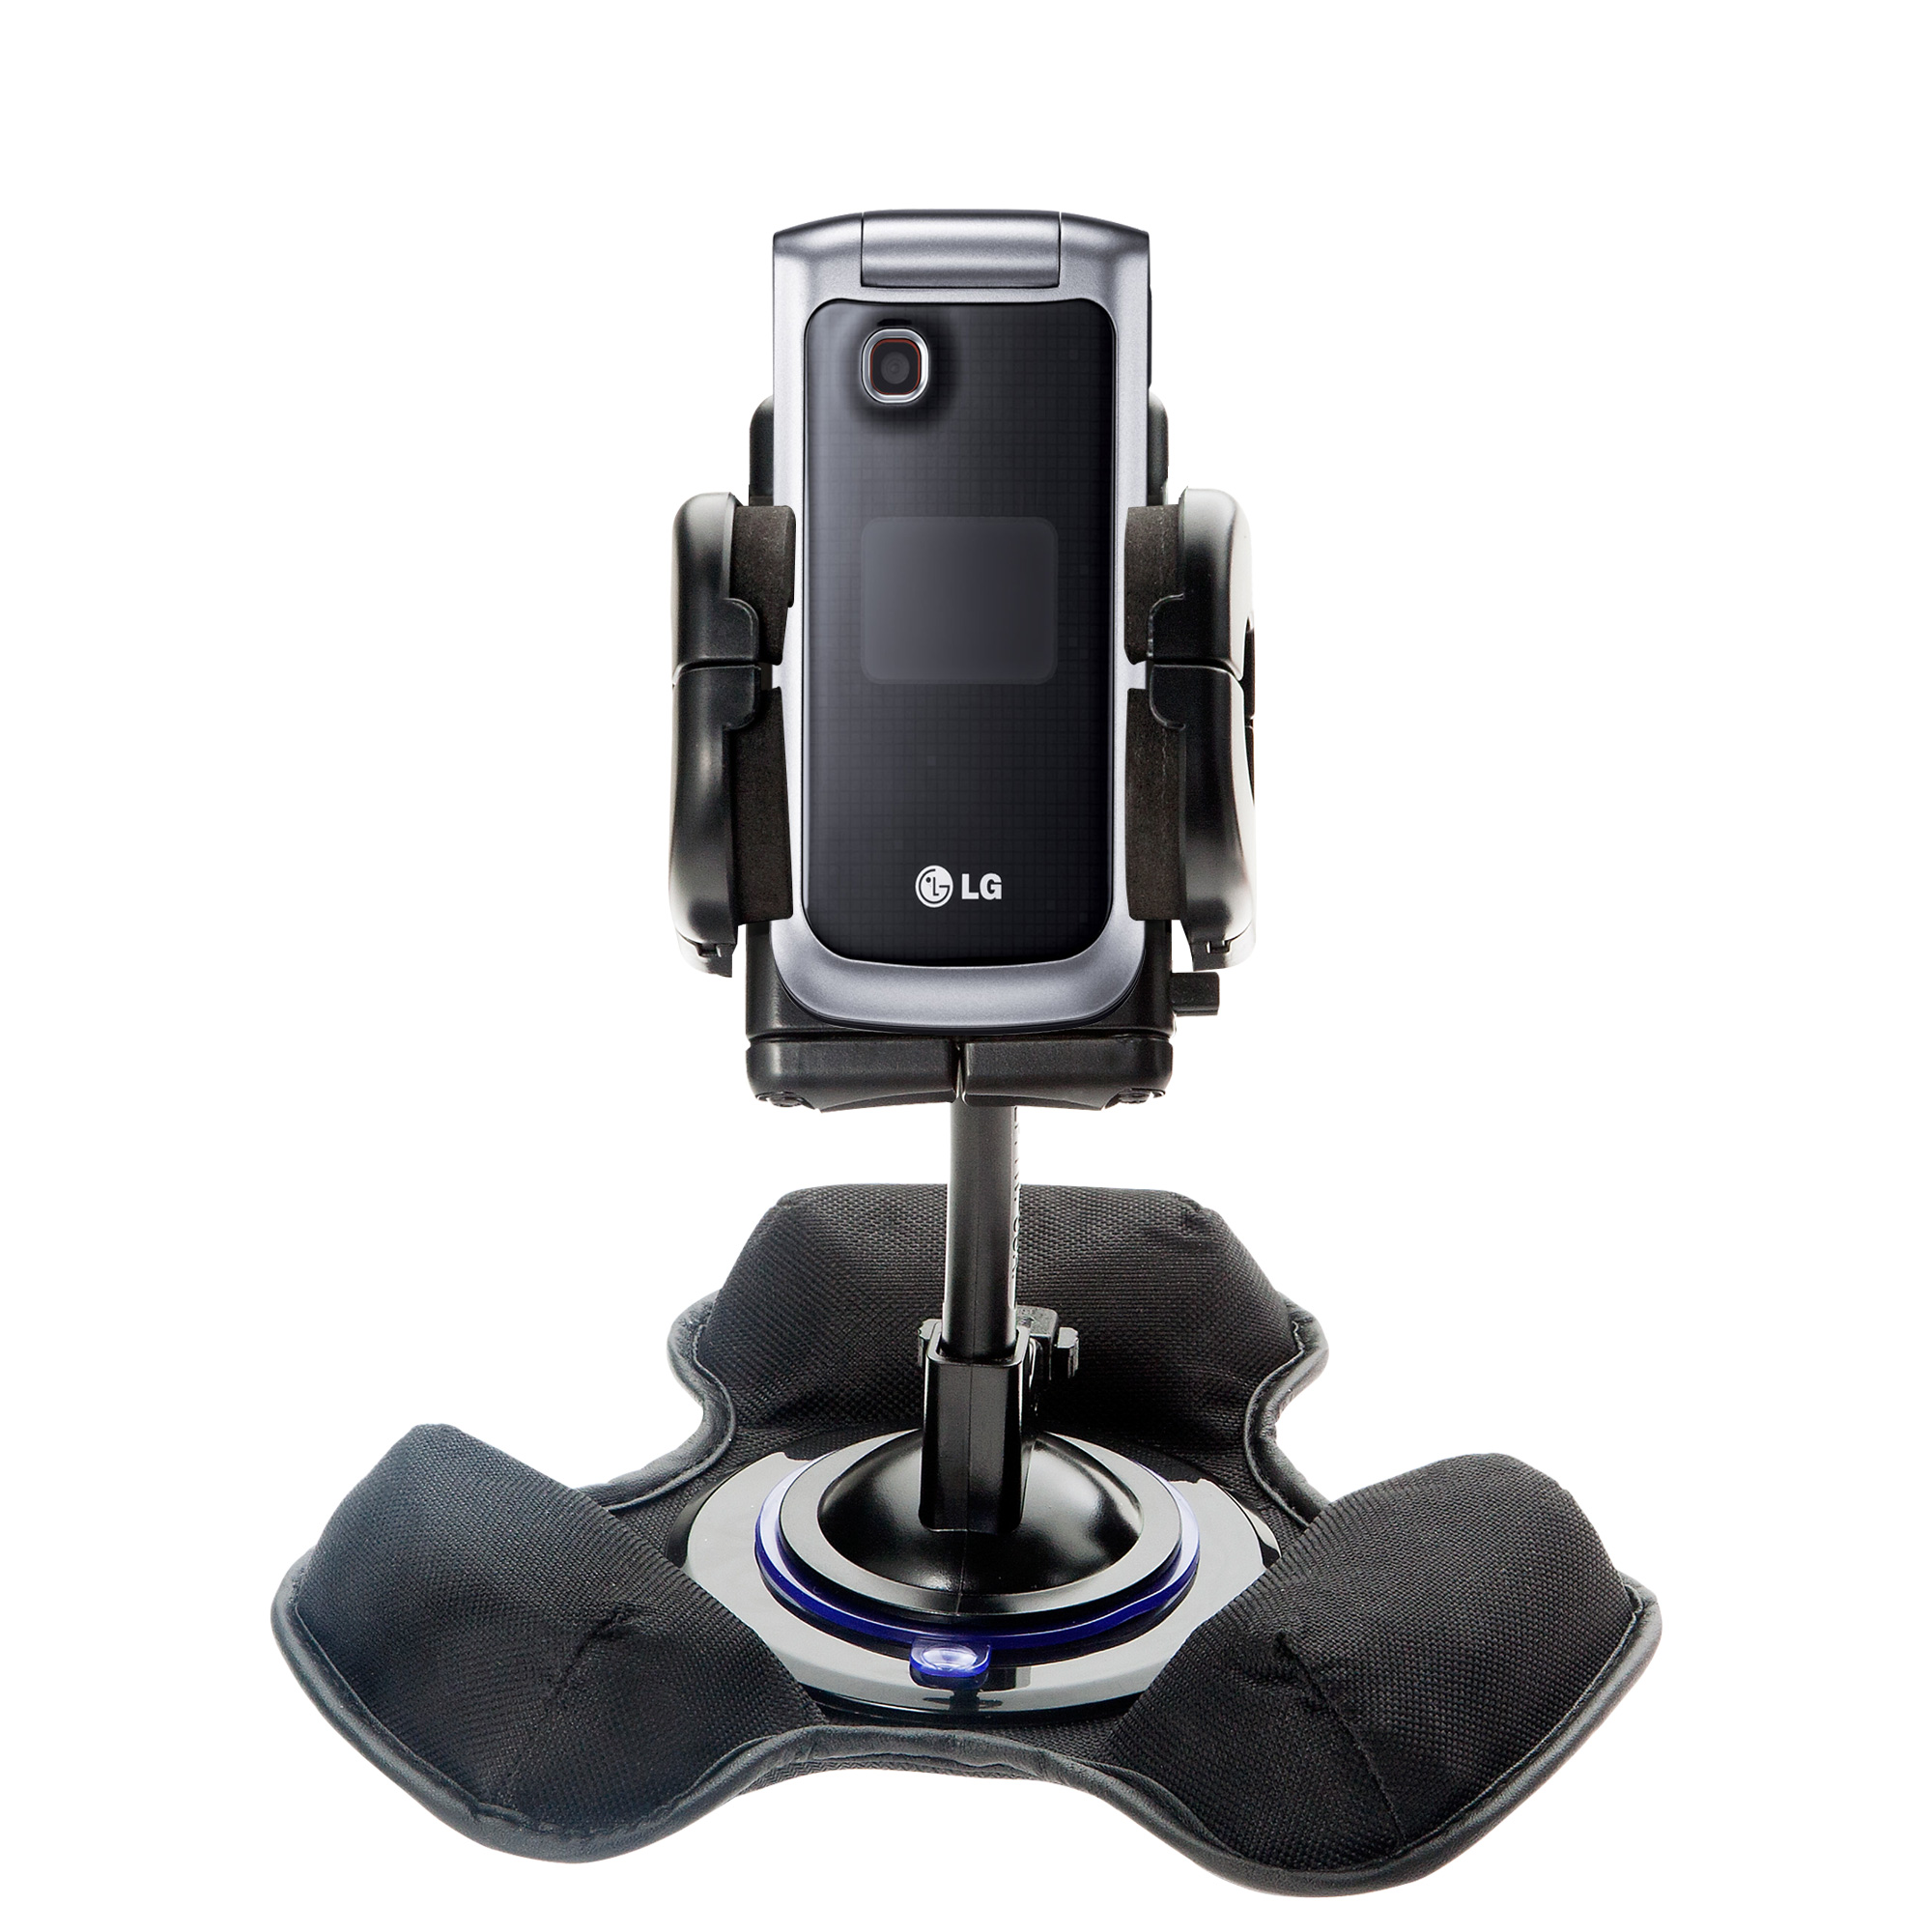 Dash and Windshield Holder compatible with the LG GB220